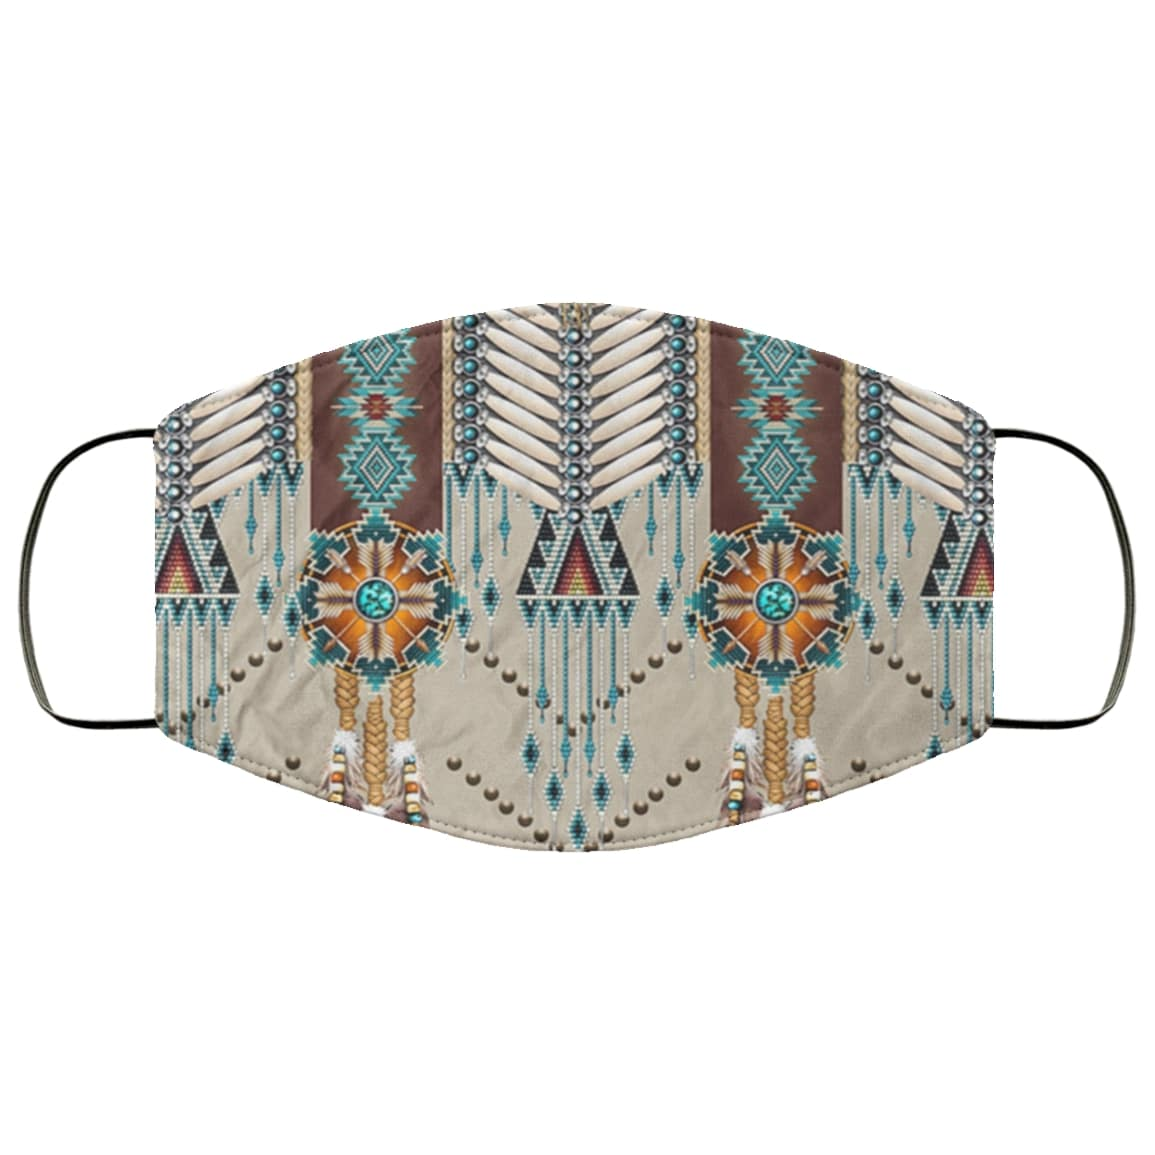 Native american culture symbol all over printed face mask 3